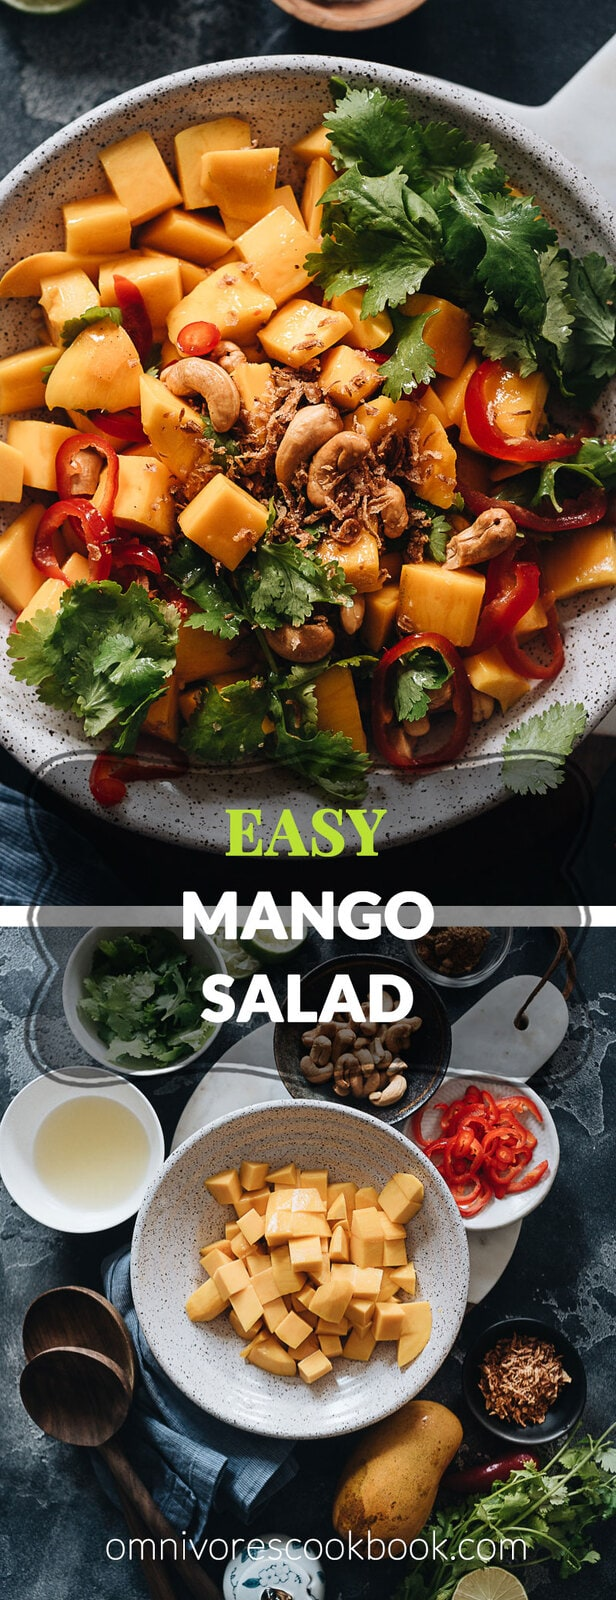 Mango Salad - Sweet and juicy mangoes tossed with lime juice, crispy nuts, crunchy fried onion, and a touch of spice. You can whip up a super-light, revitalizing brunch for the warm weather in no time. {Vegan, Gluten-Free}